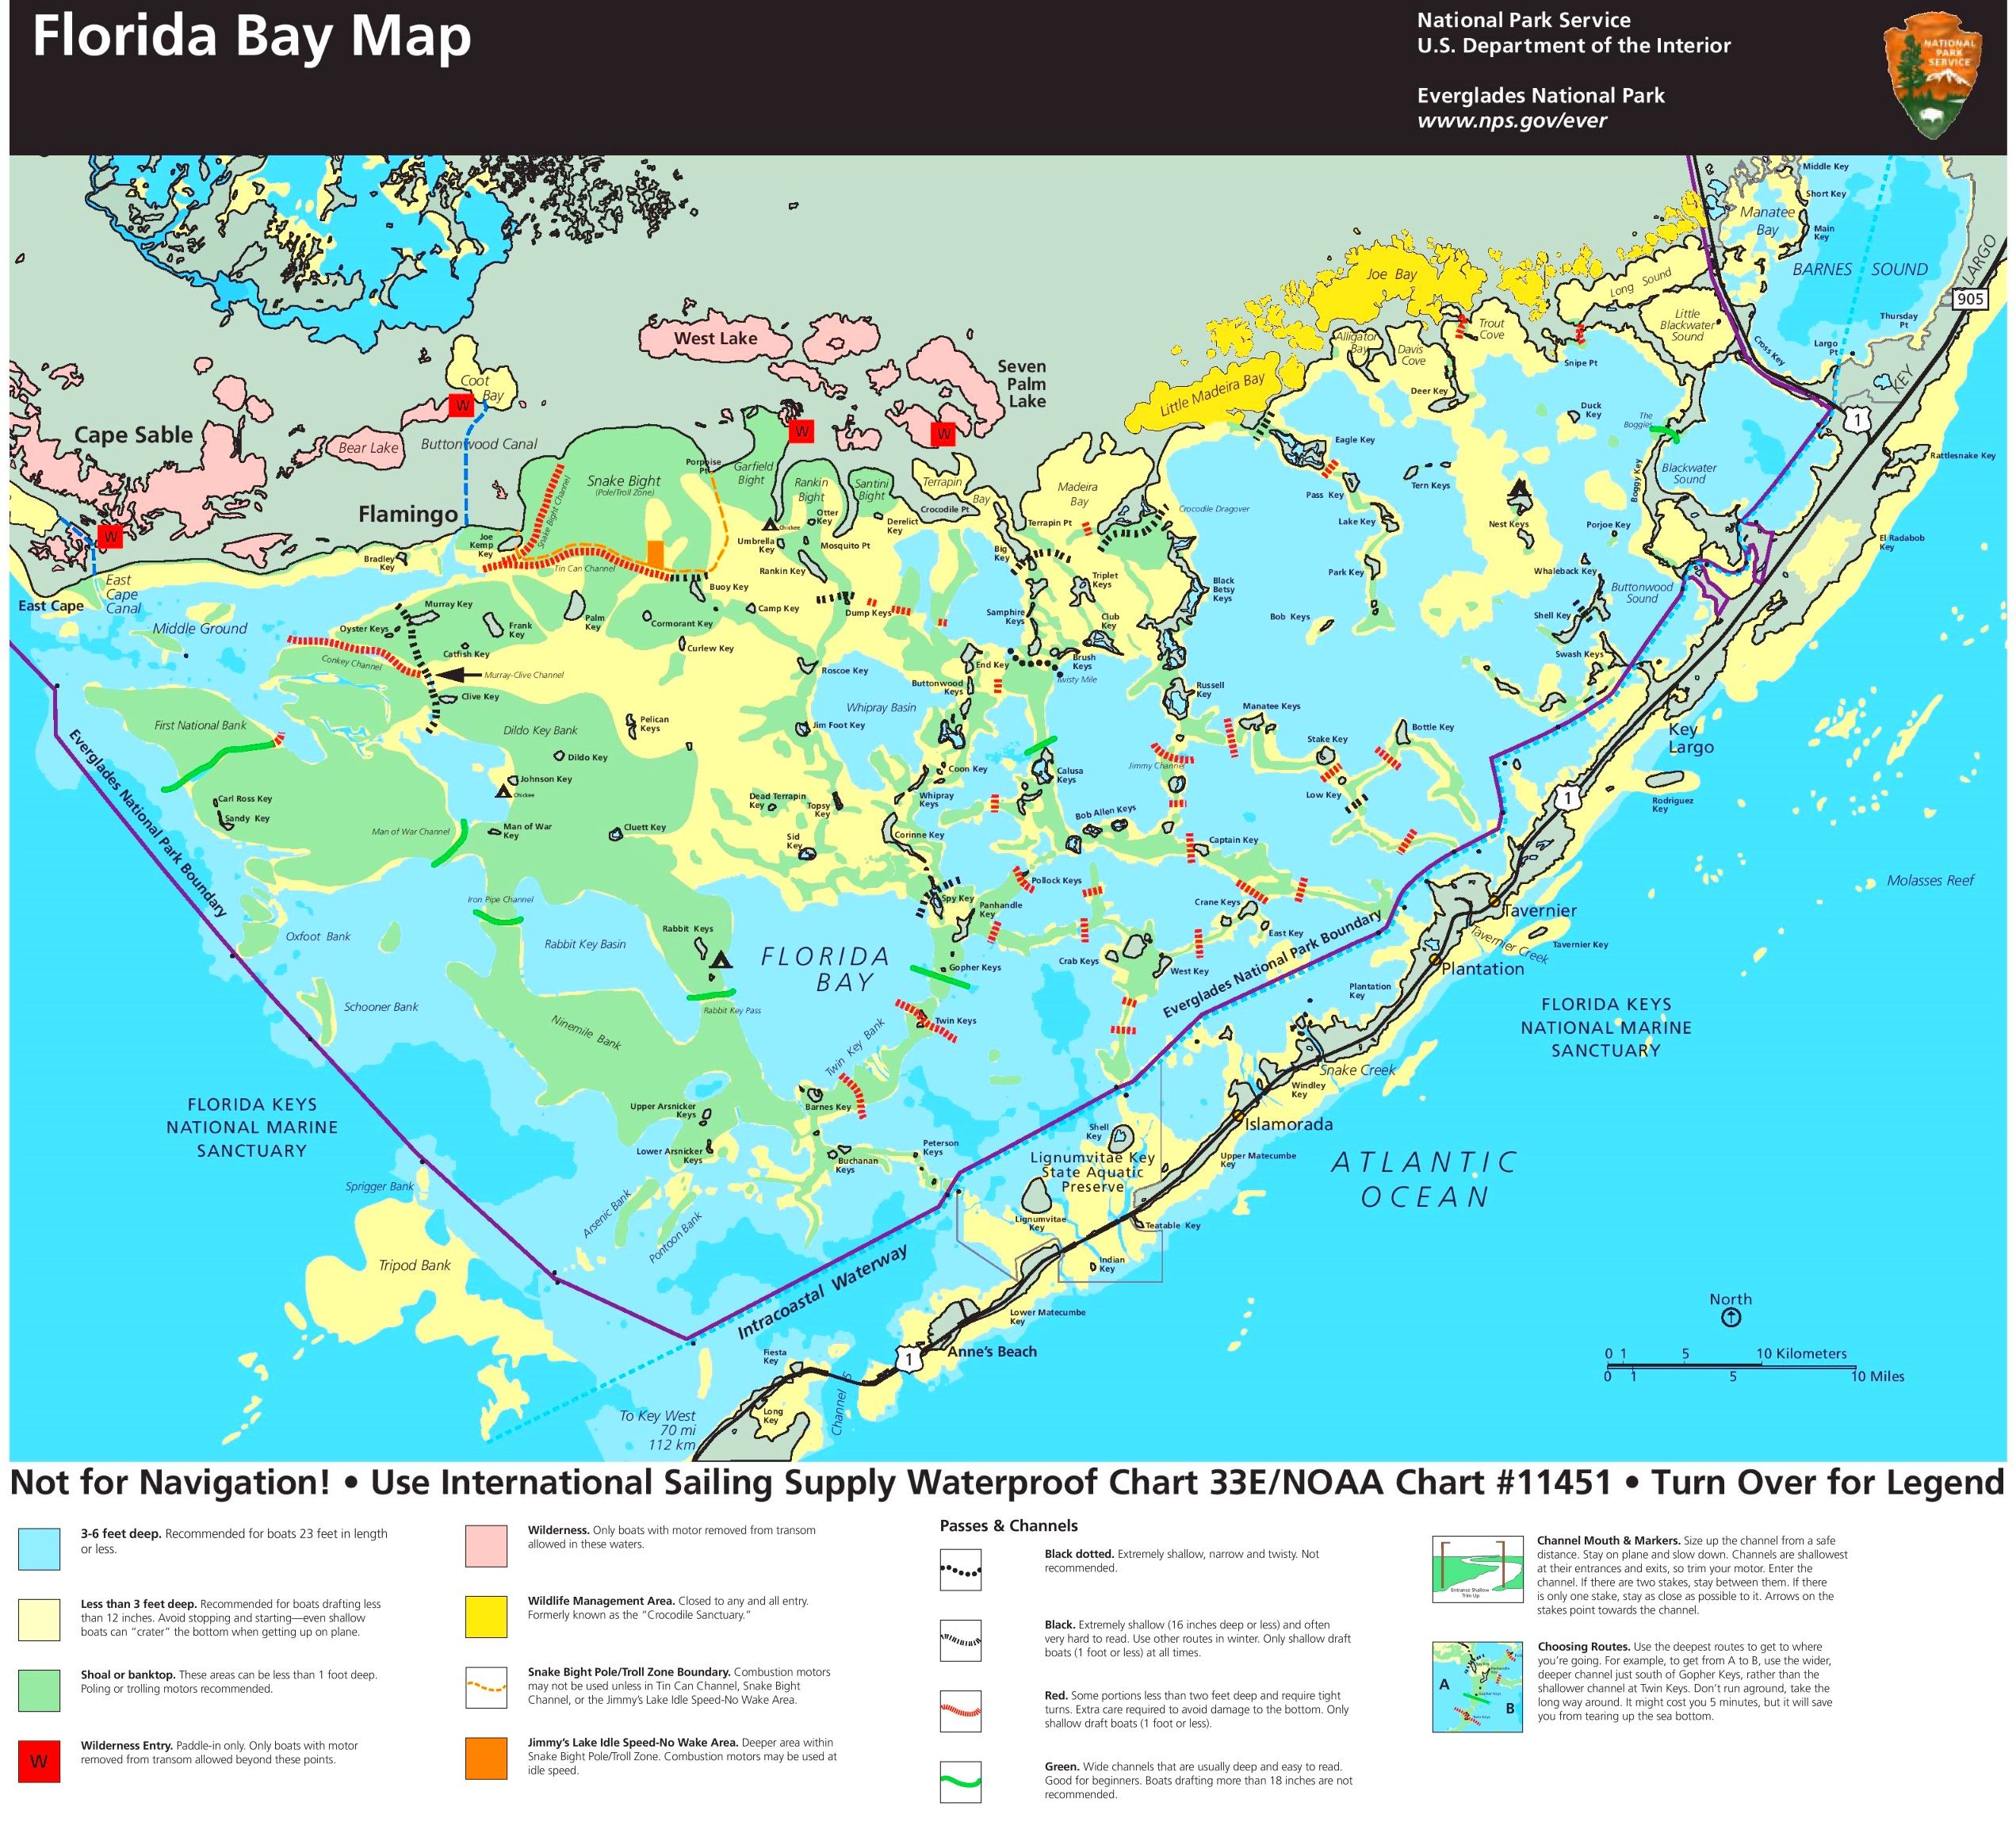 Florida Bay Map - Map Of Florida Showing The Everglades